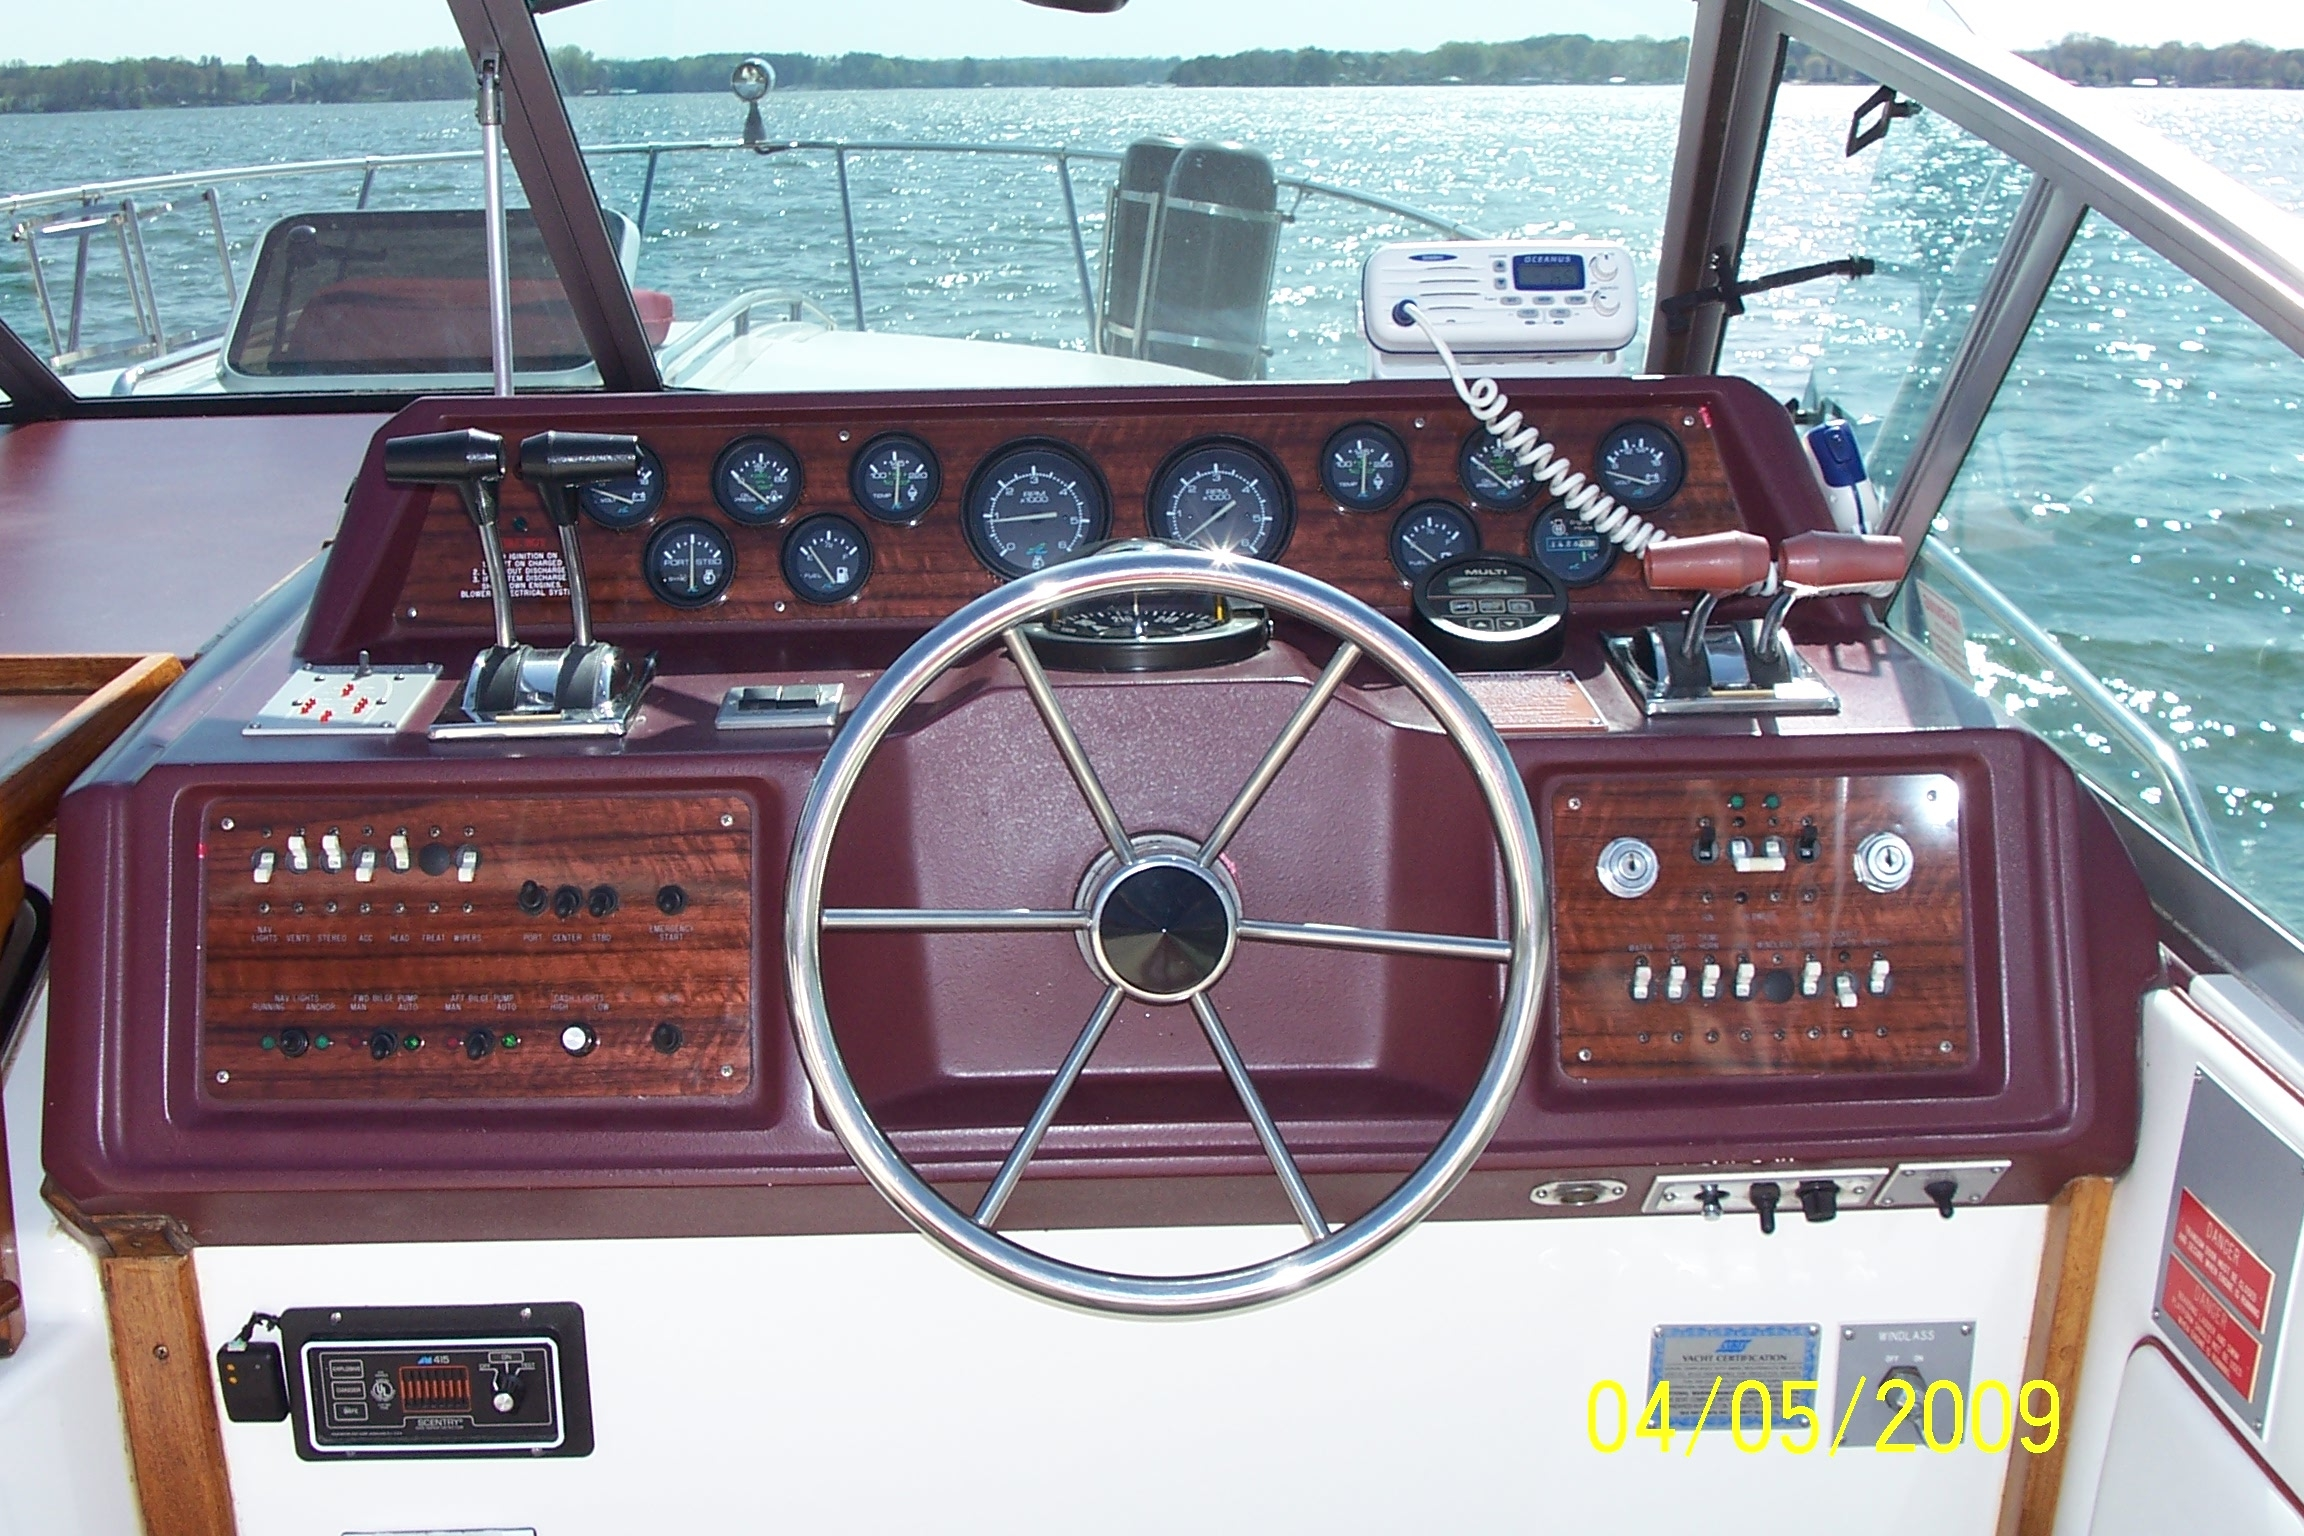 Boat Instrument Panel : Boat instrument panel bing images